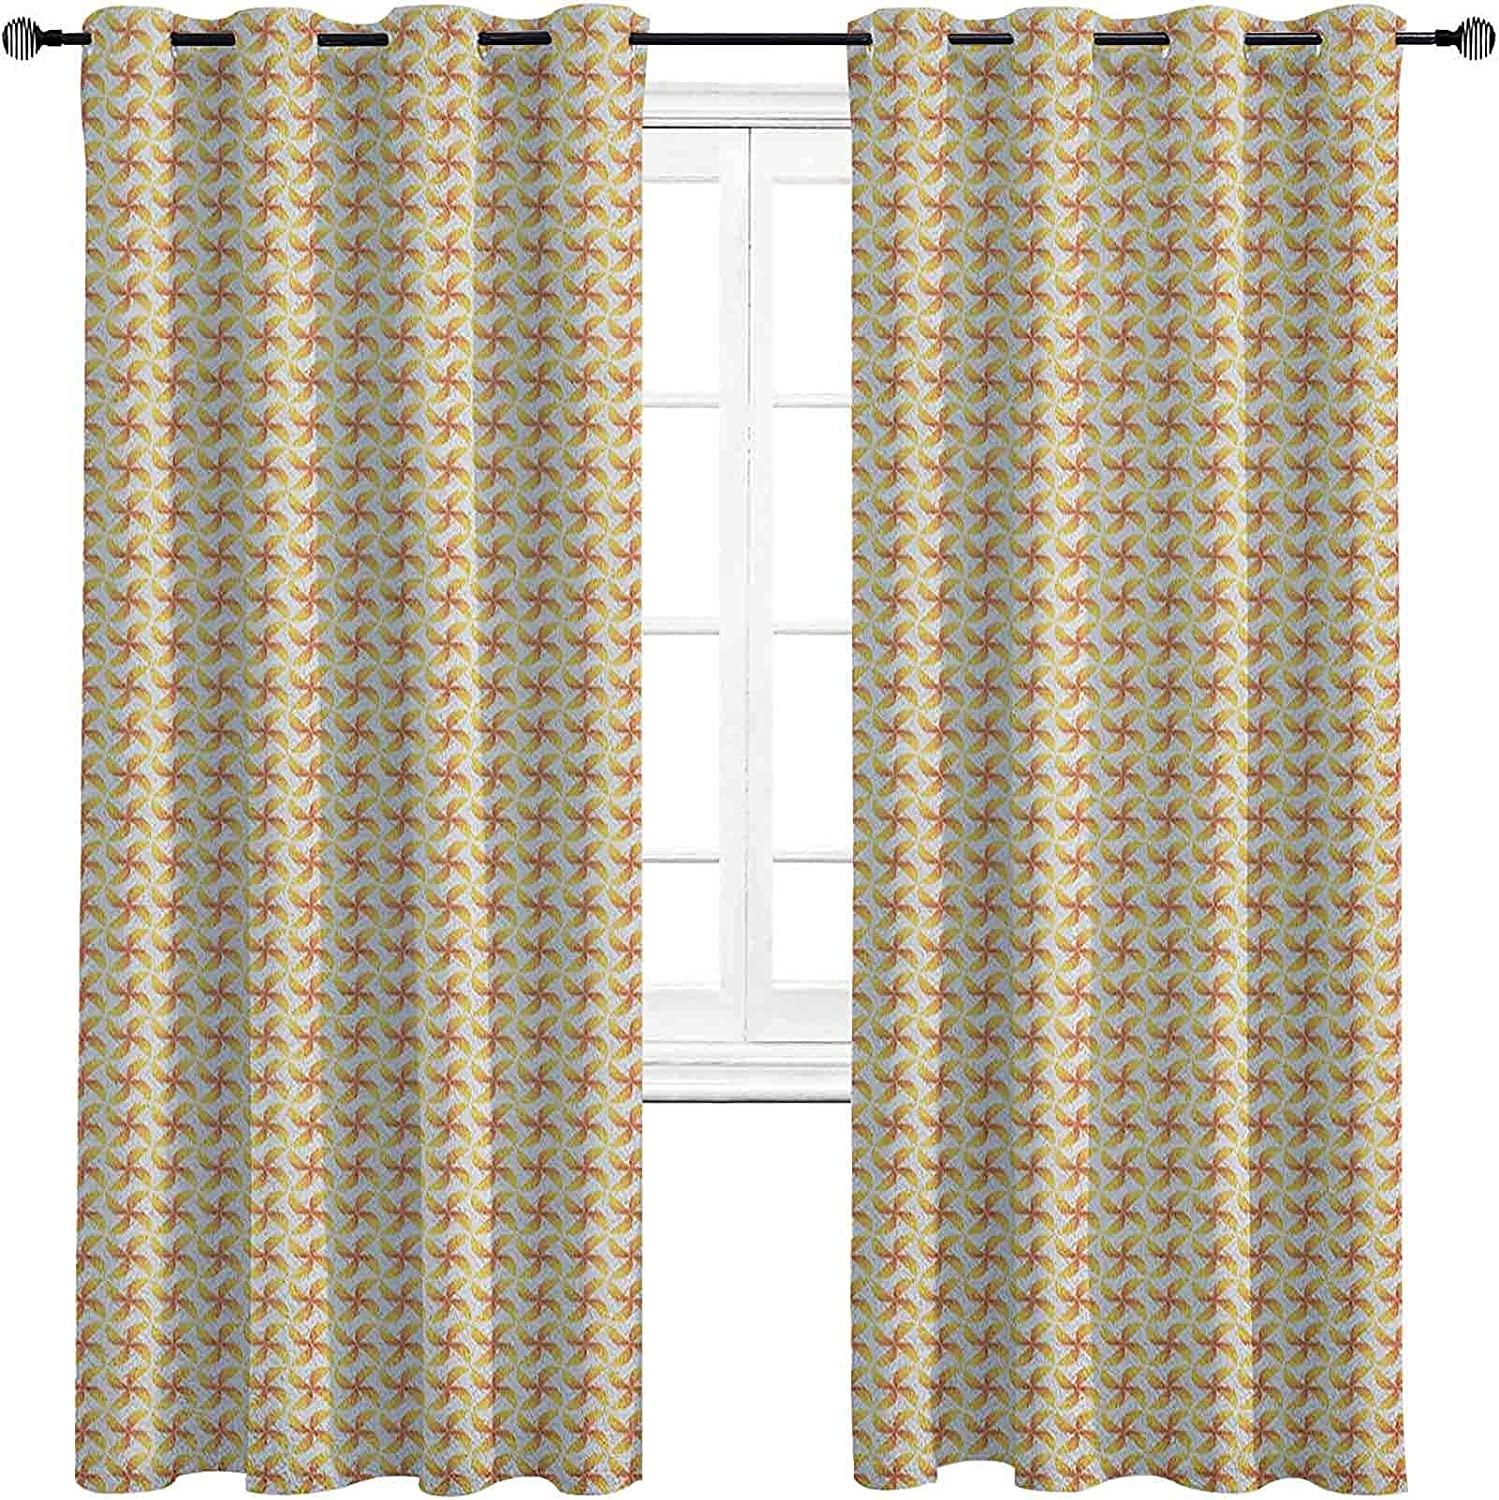 Popular Pinwheel Blackout Curtains with Motif Cheap mail order shopping Grommets darken Abstract